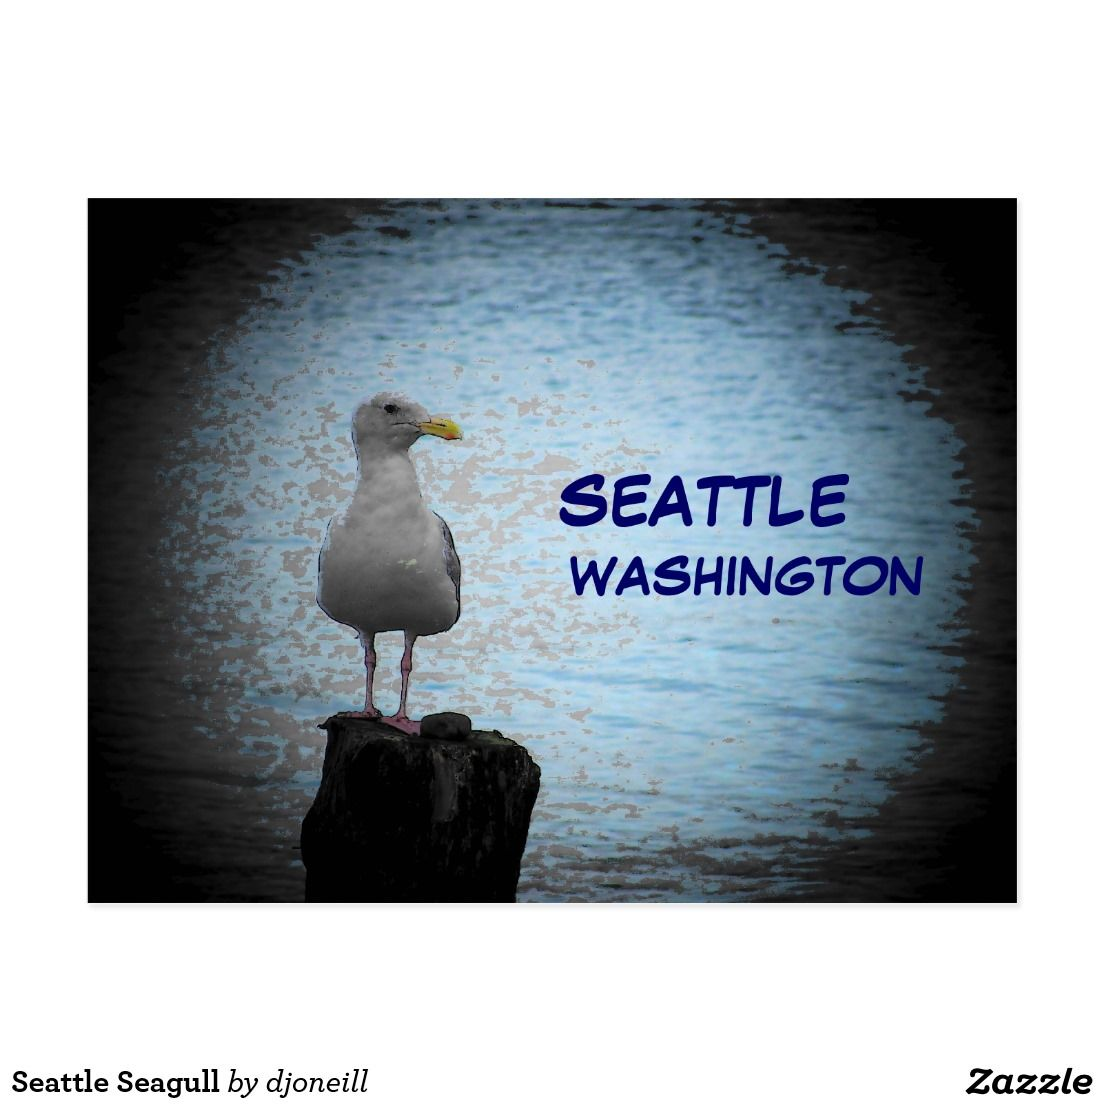 Seattle Seagull Postcard. From Washington State in the Beautiful Pacific Northwest, Seattle sits on the Puget Sound that opens into the Pacific Ocean. West coast life and natural beauty!  Home of the Seahawks, Mariners, and Sounders FC.